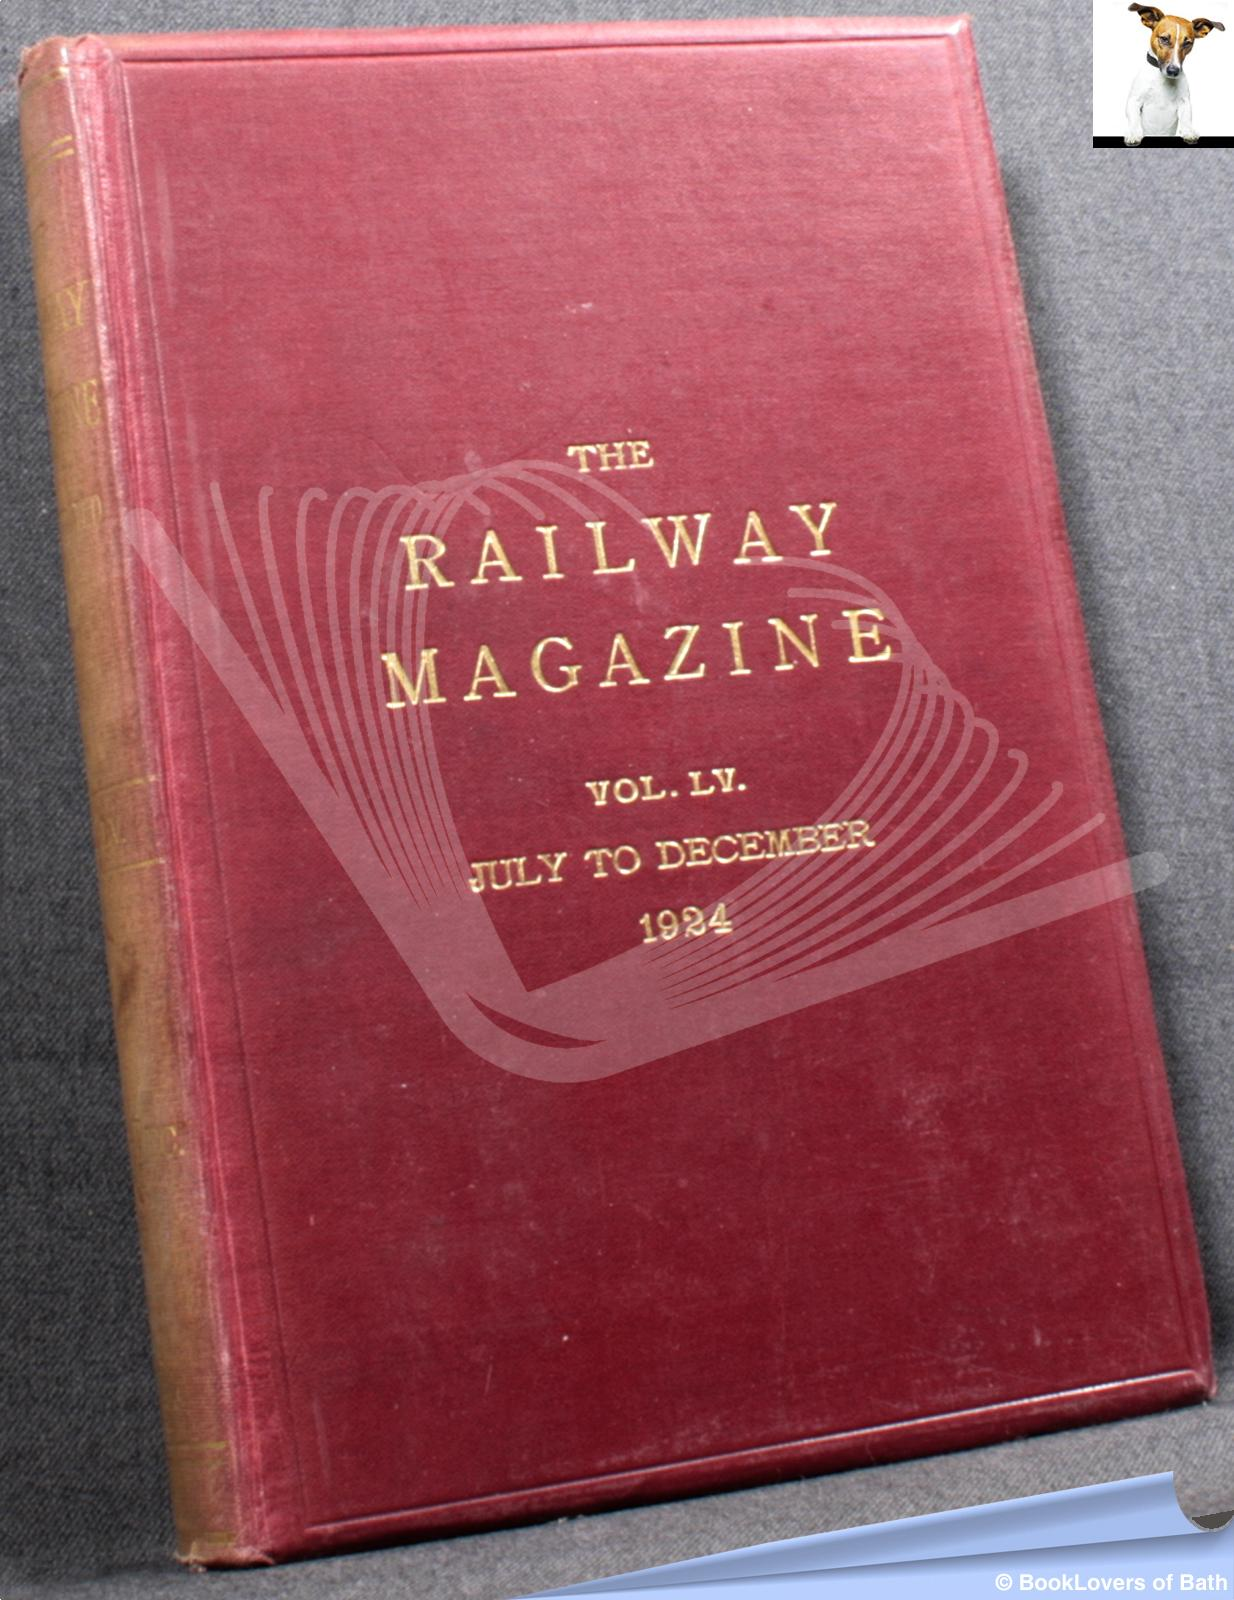 The Railway Magazine Vol. LV July to December 1924 - Anon.